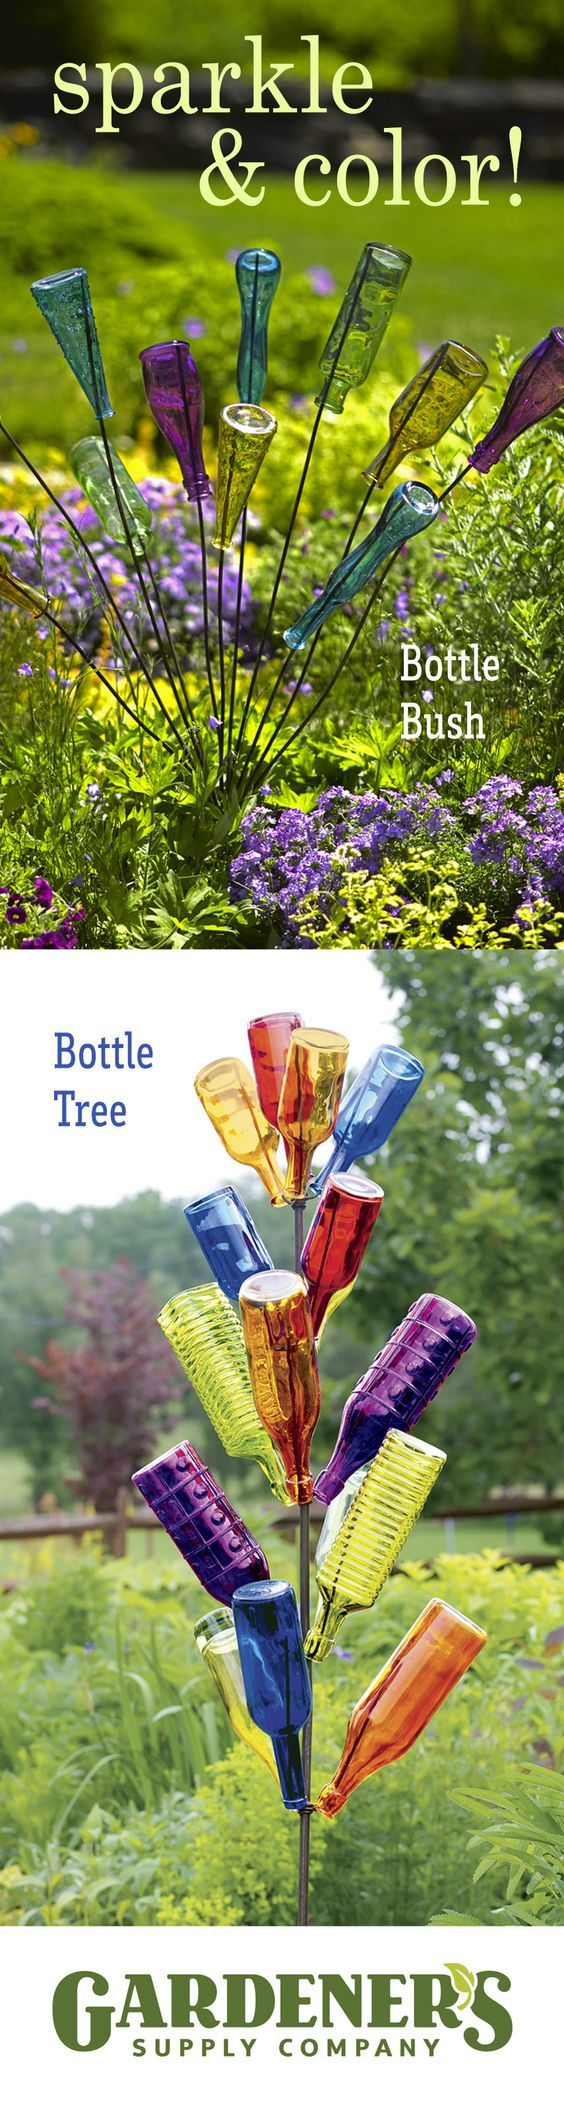 A Bottle Tree Is A Sparkling Glass Sculpture That You Design. Just Add  Different Color Bottles To Your Bottle Tree.